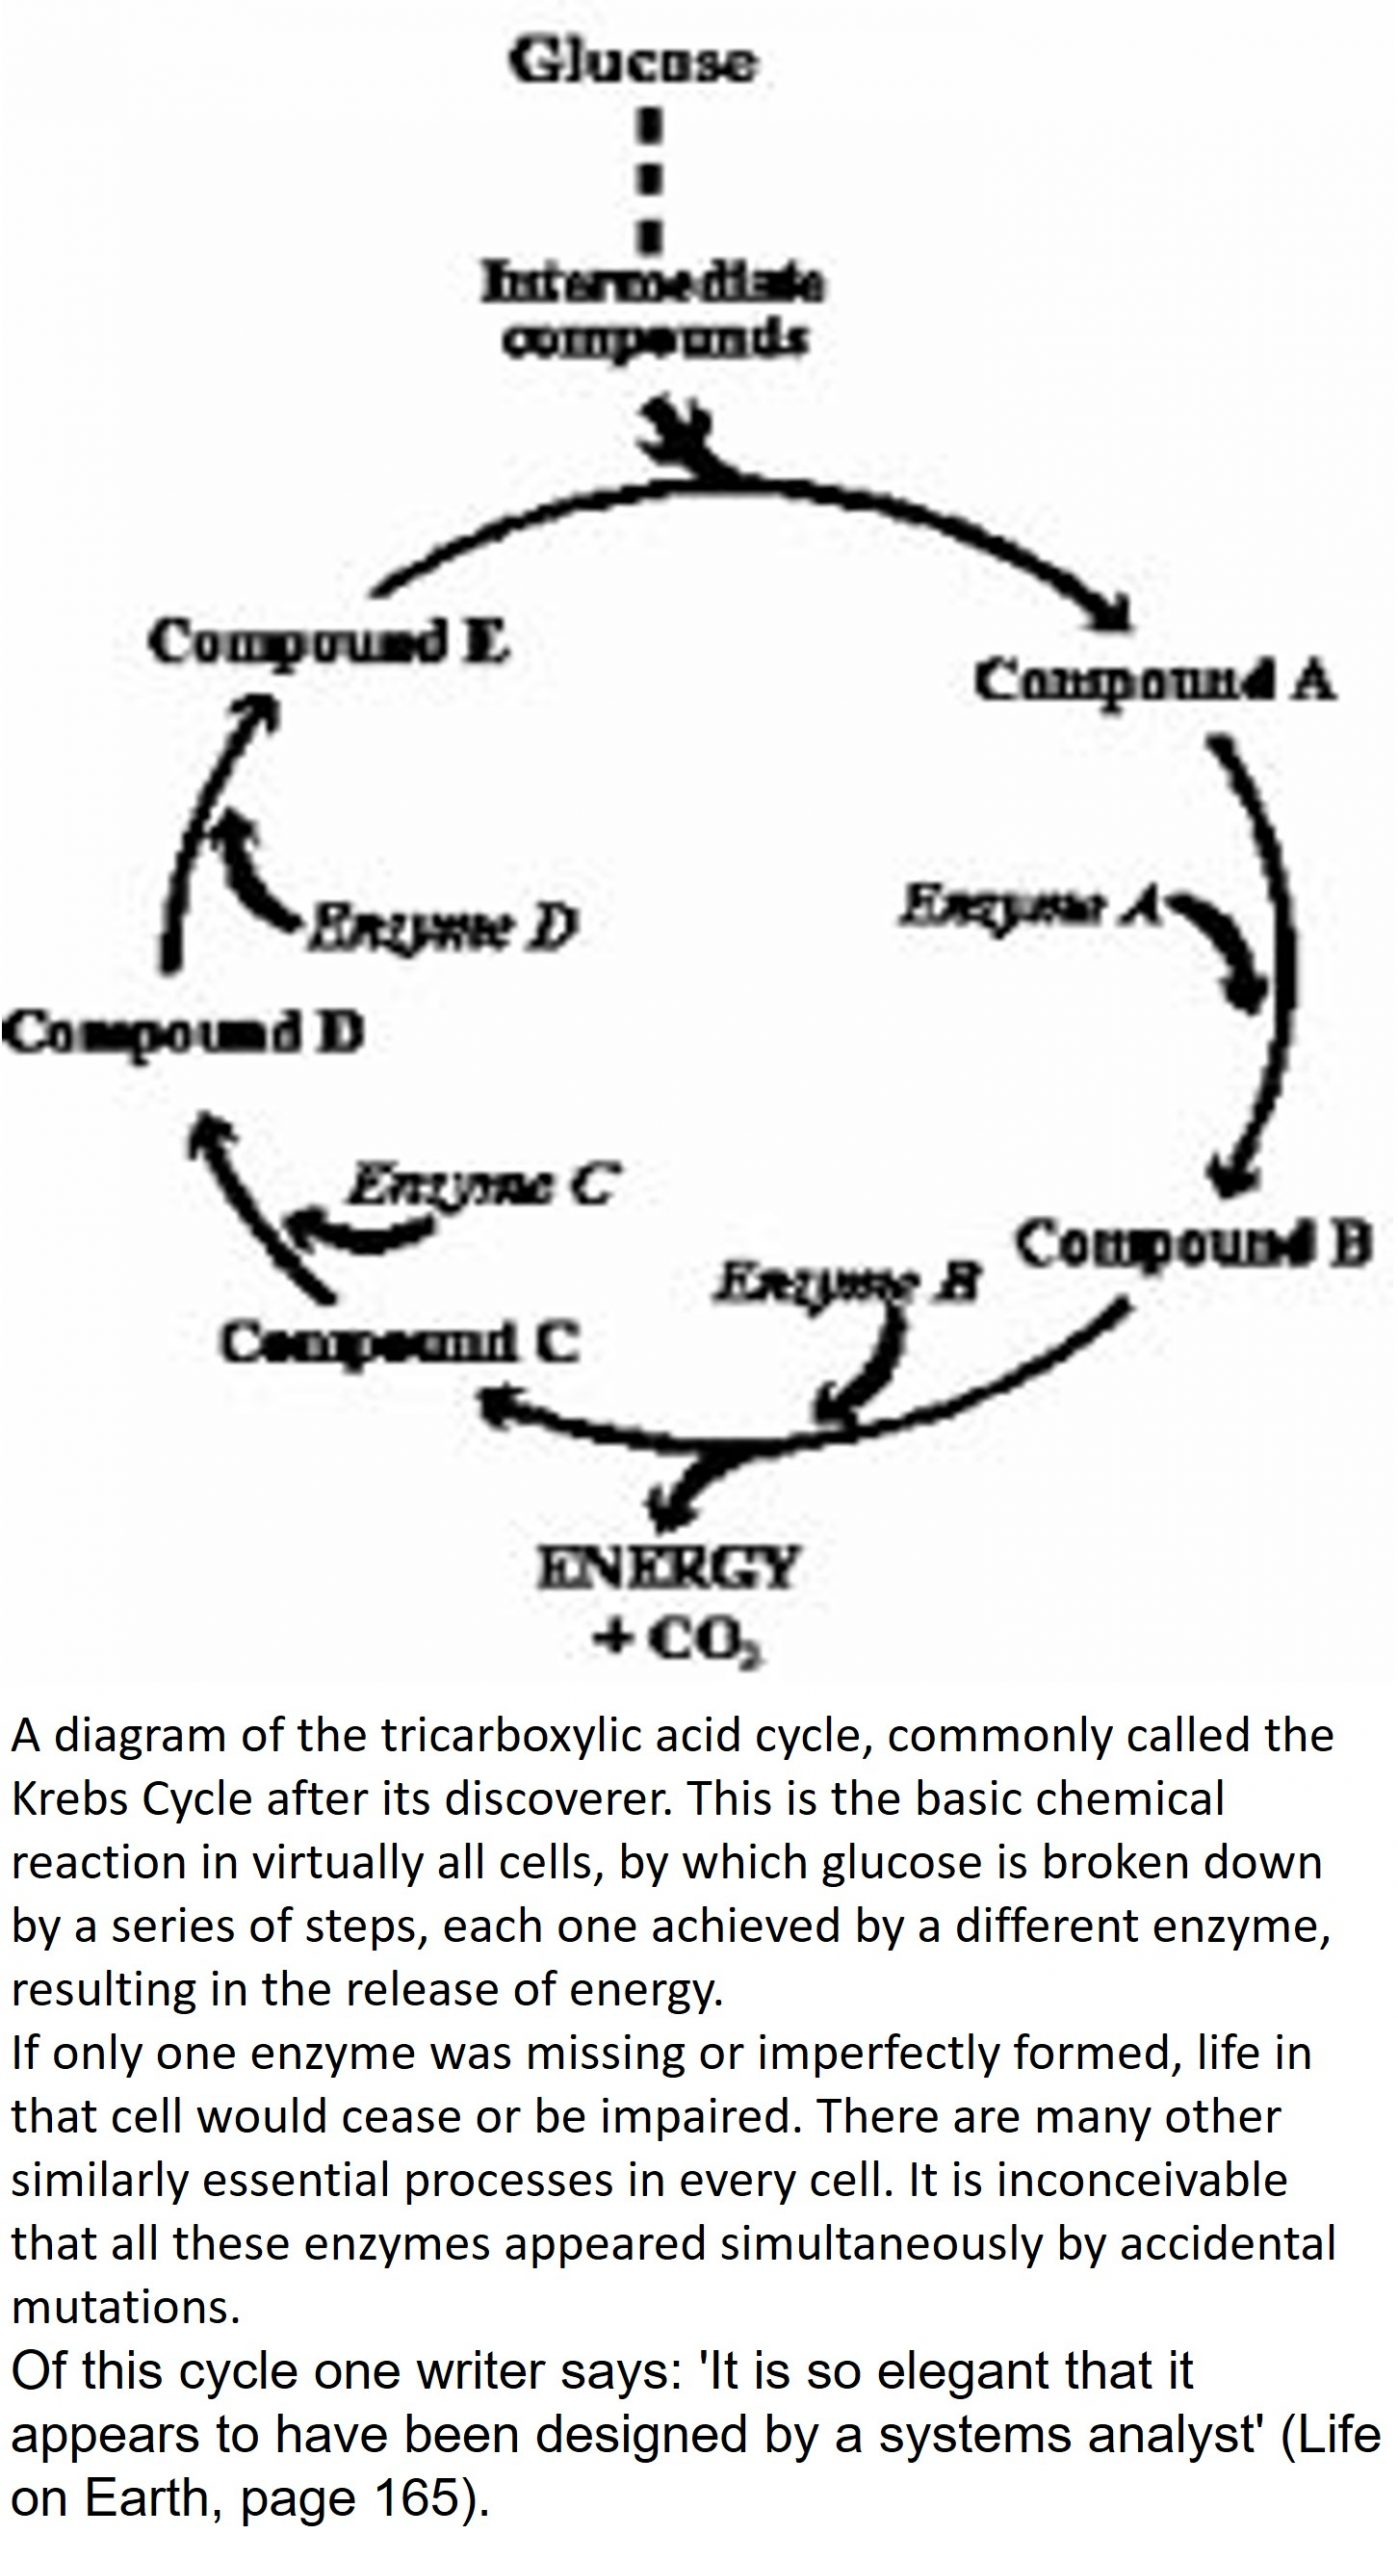 A diagram of the tricarboxylic acid cycle, commonly called the Krebs Cycle